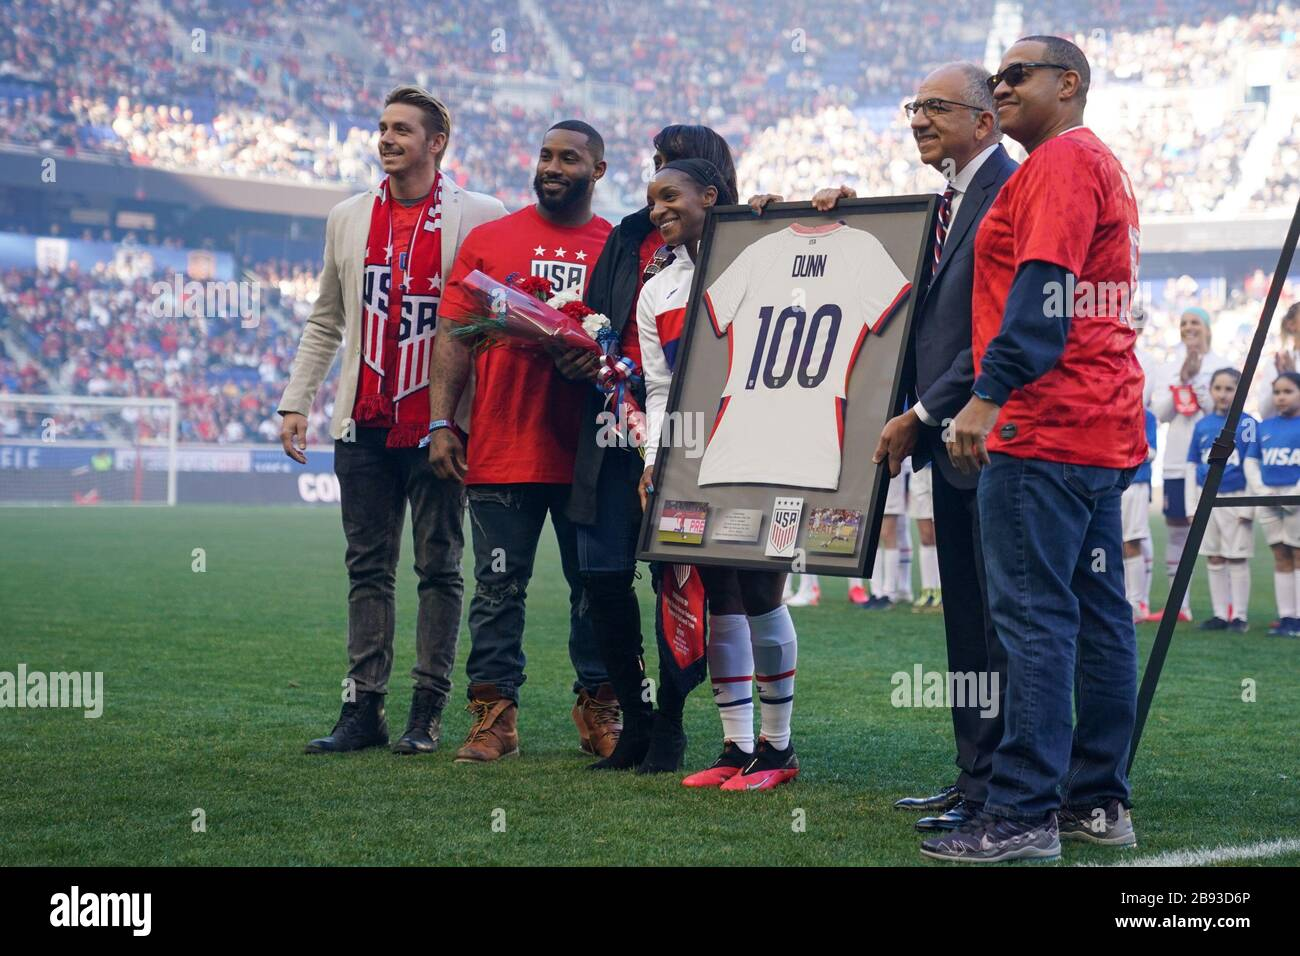 HARRISON. USA. MAR 08:  Family members of Crystal Dunn of the USA celebrate her 100th cap ceremony with her ahead of the 2020 SheBelieves Cup Women's International friendly football match between USA Women vs Spain Women at Red Bull Arena in Harrison, NJ, USA. ***No commericial use*** (Photo by Daniela Porcelli/SPP) Stock Photo